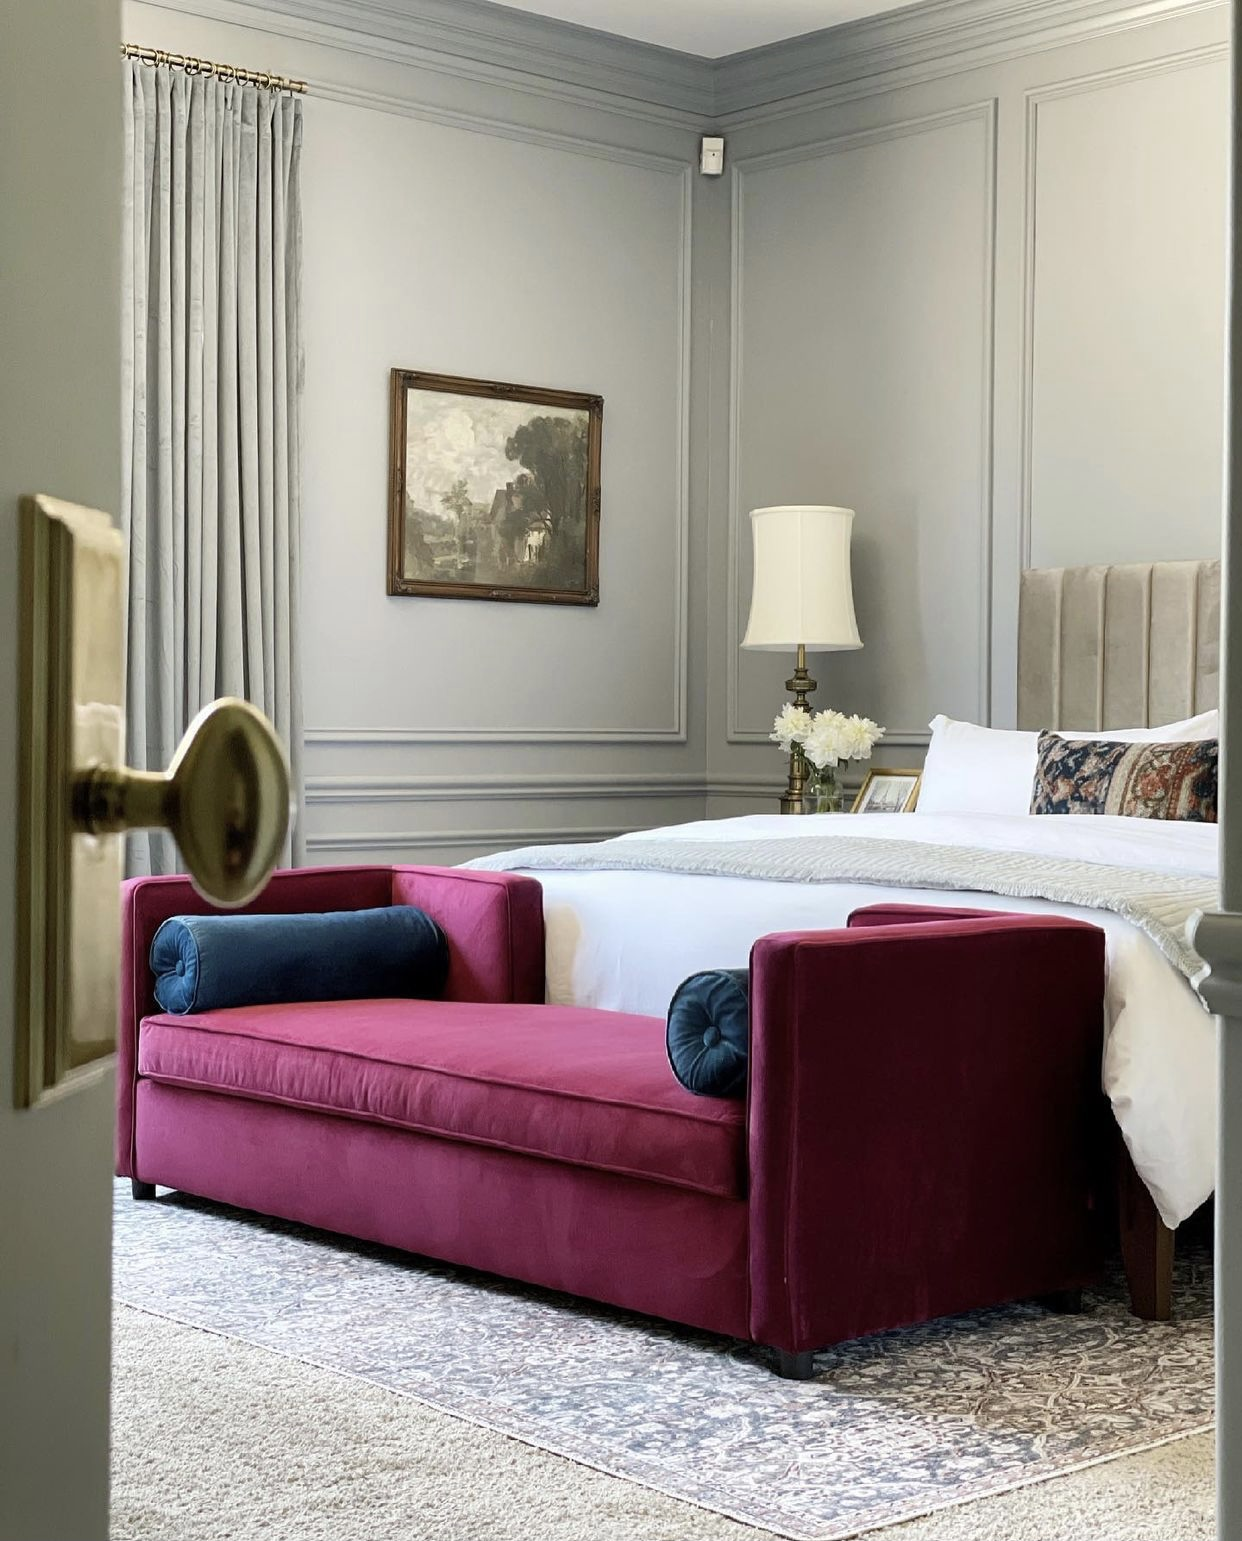 Traditional bedroom with blue gray walls, picture frame molding and a bright sofa.